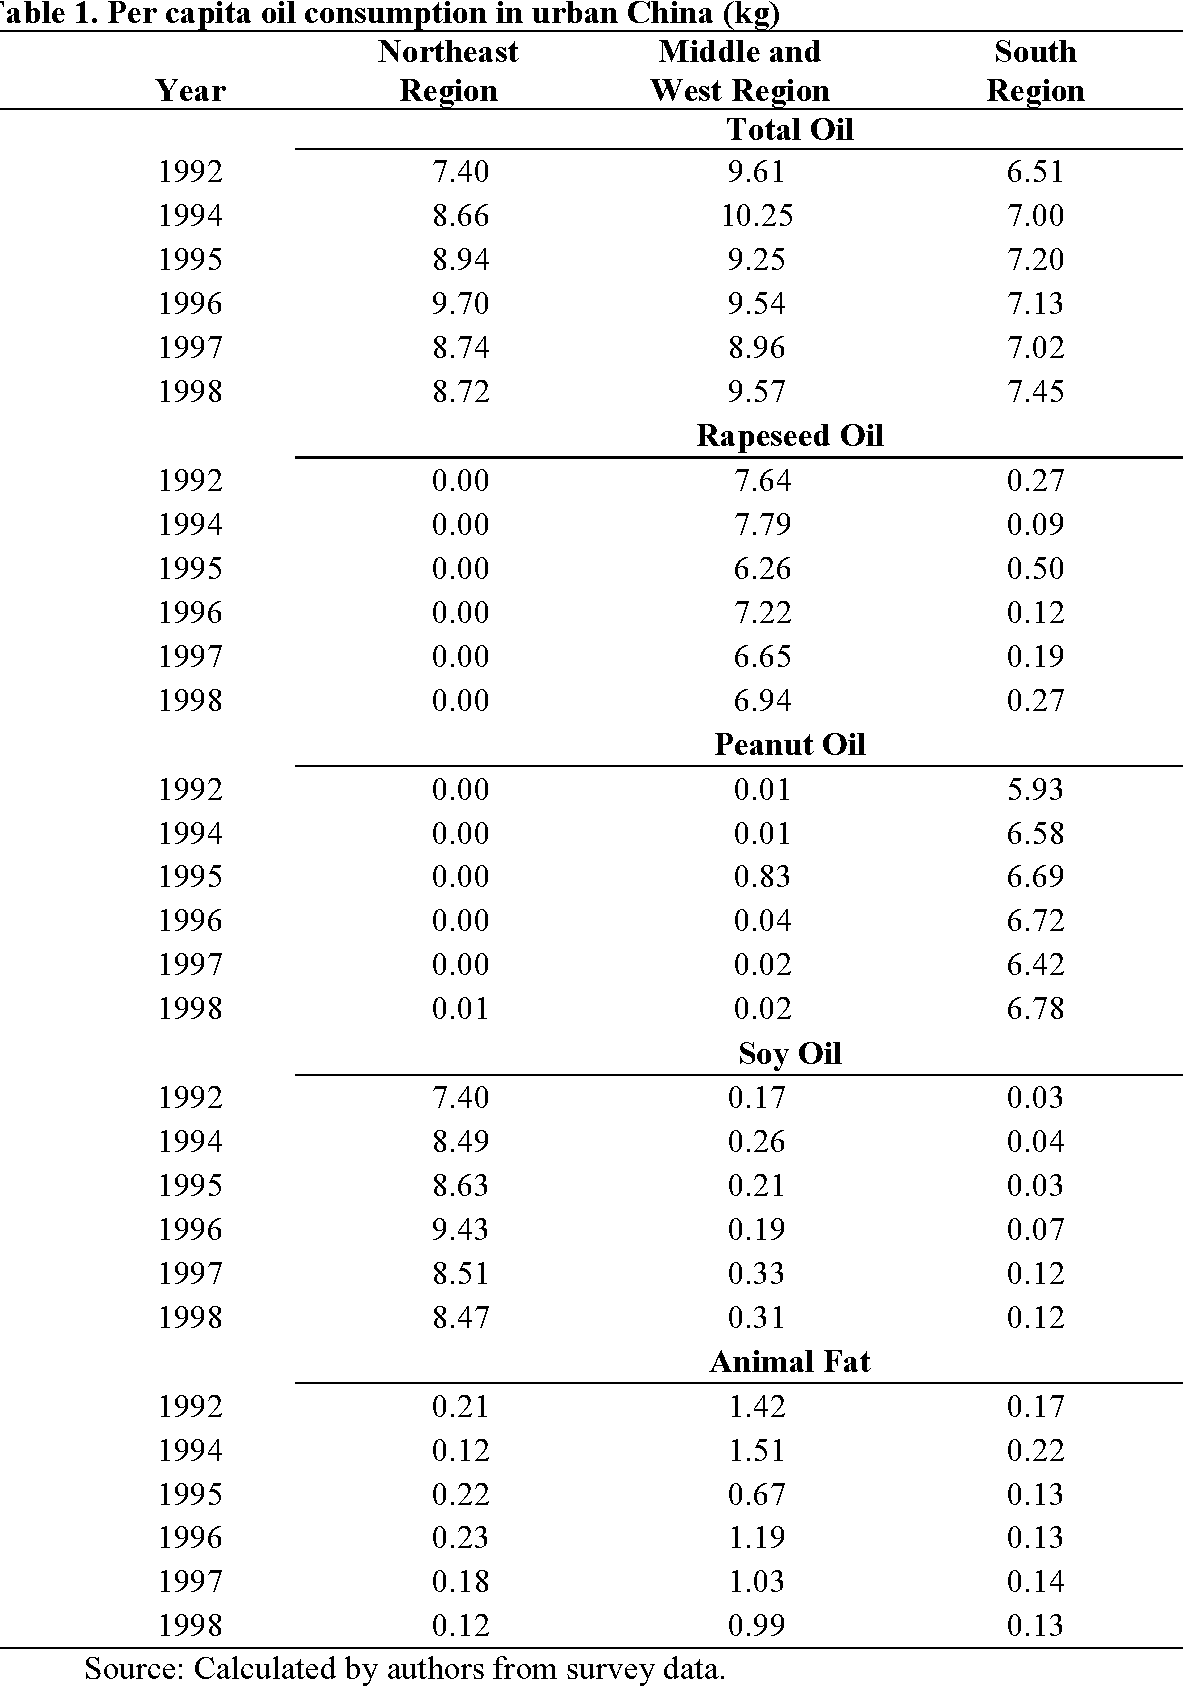 Table 1 from Urban Demand for Edible Oils and Fats in China